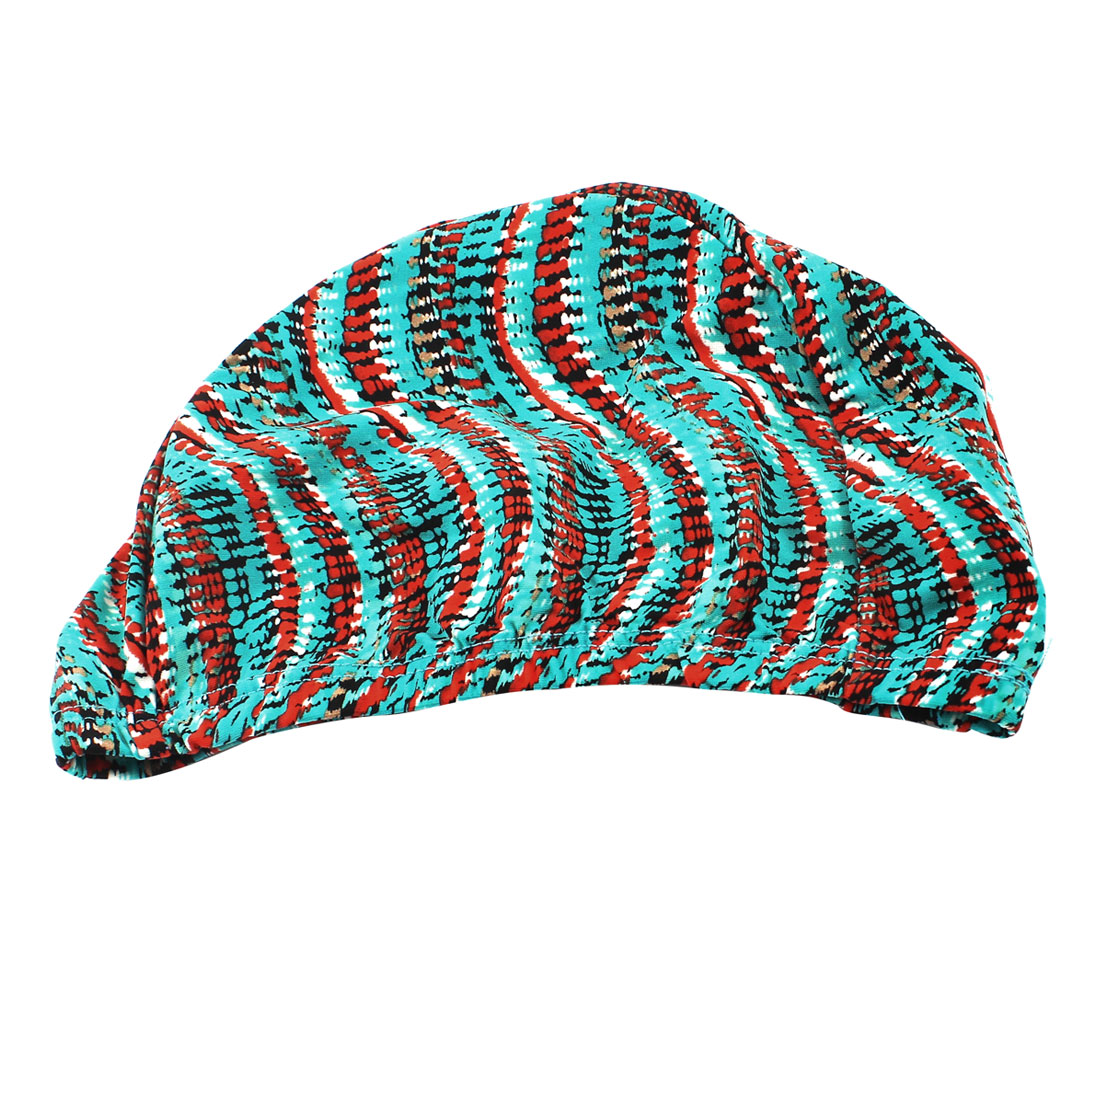 Teal Orange Stretchy Polyester Surfing Swimming Cap Hat for Woman Man